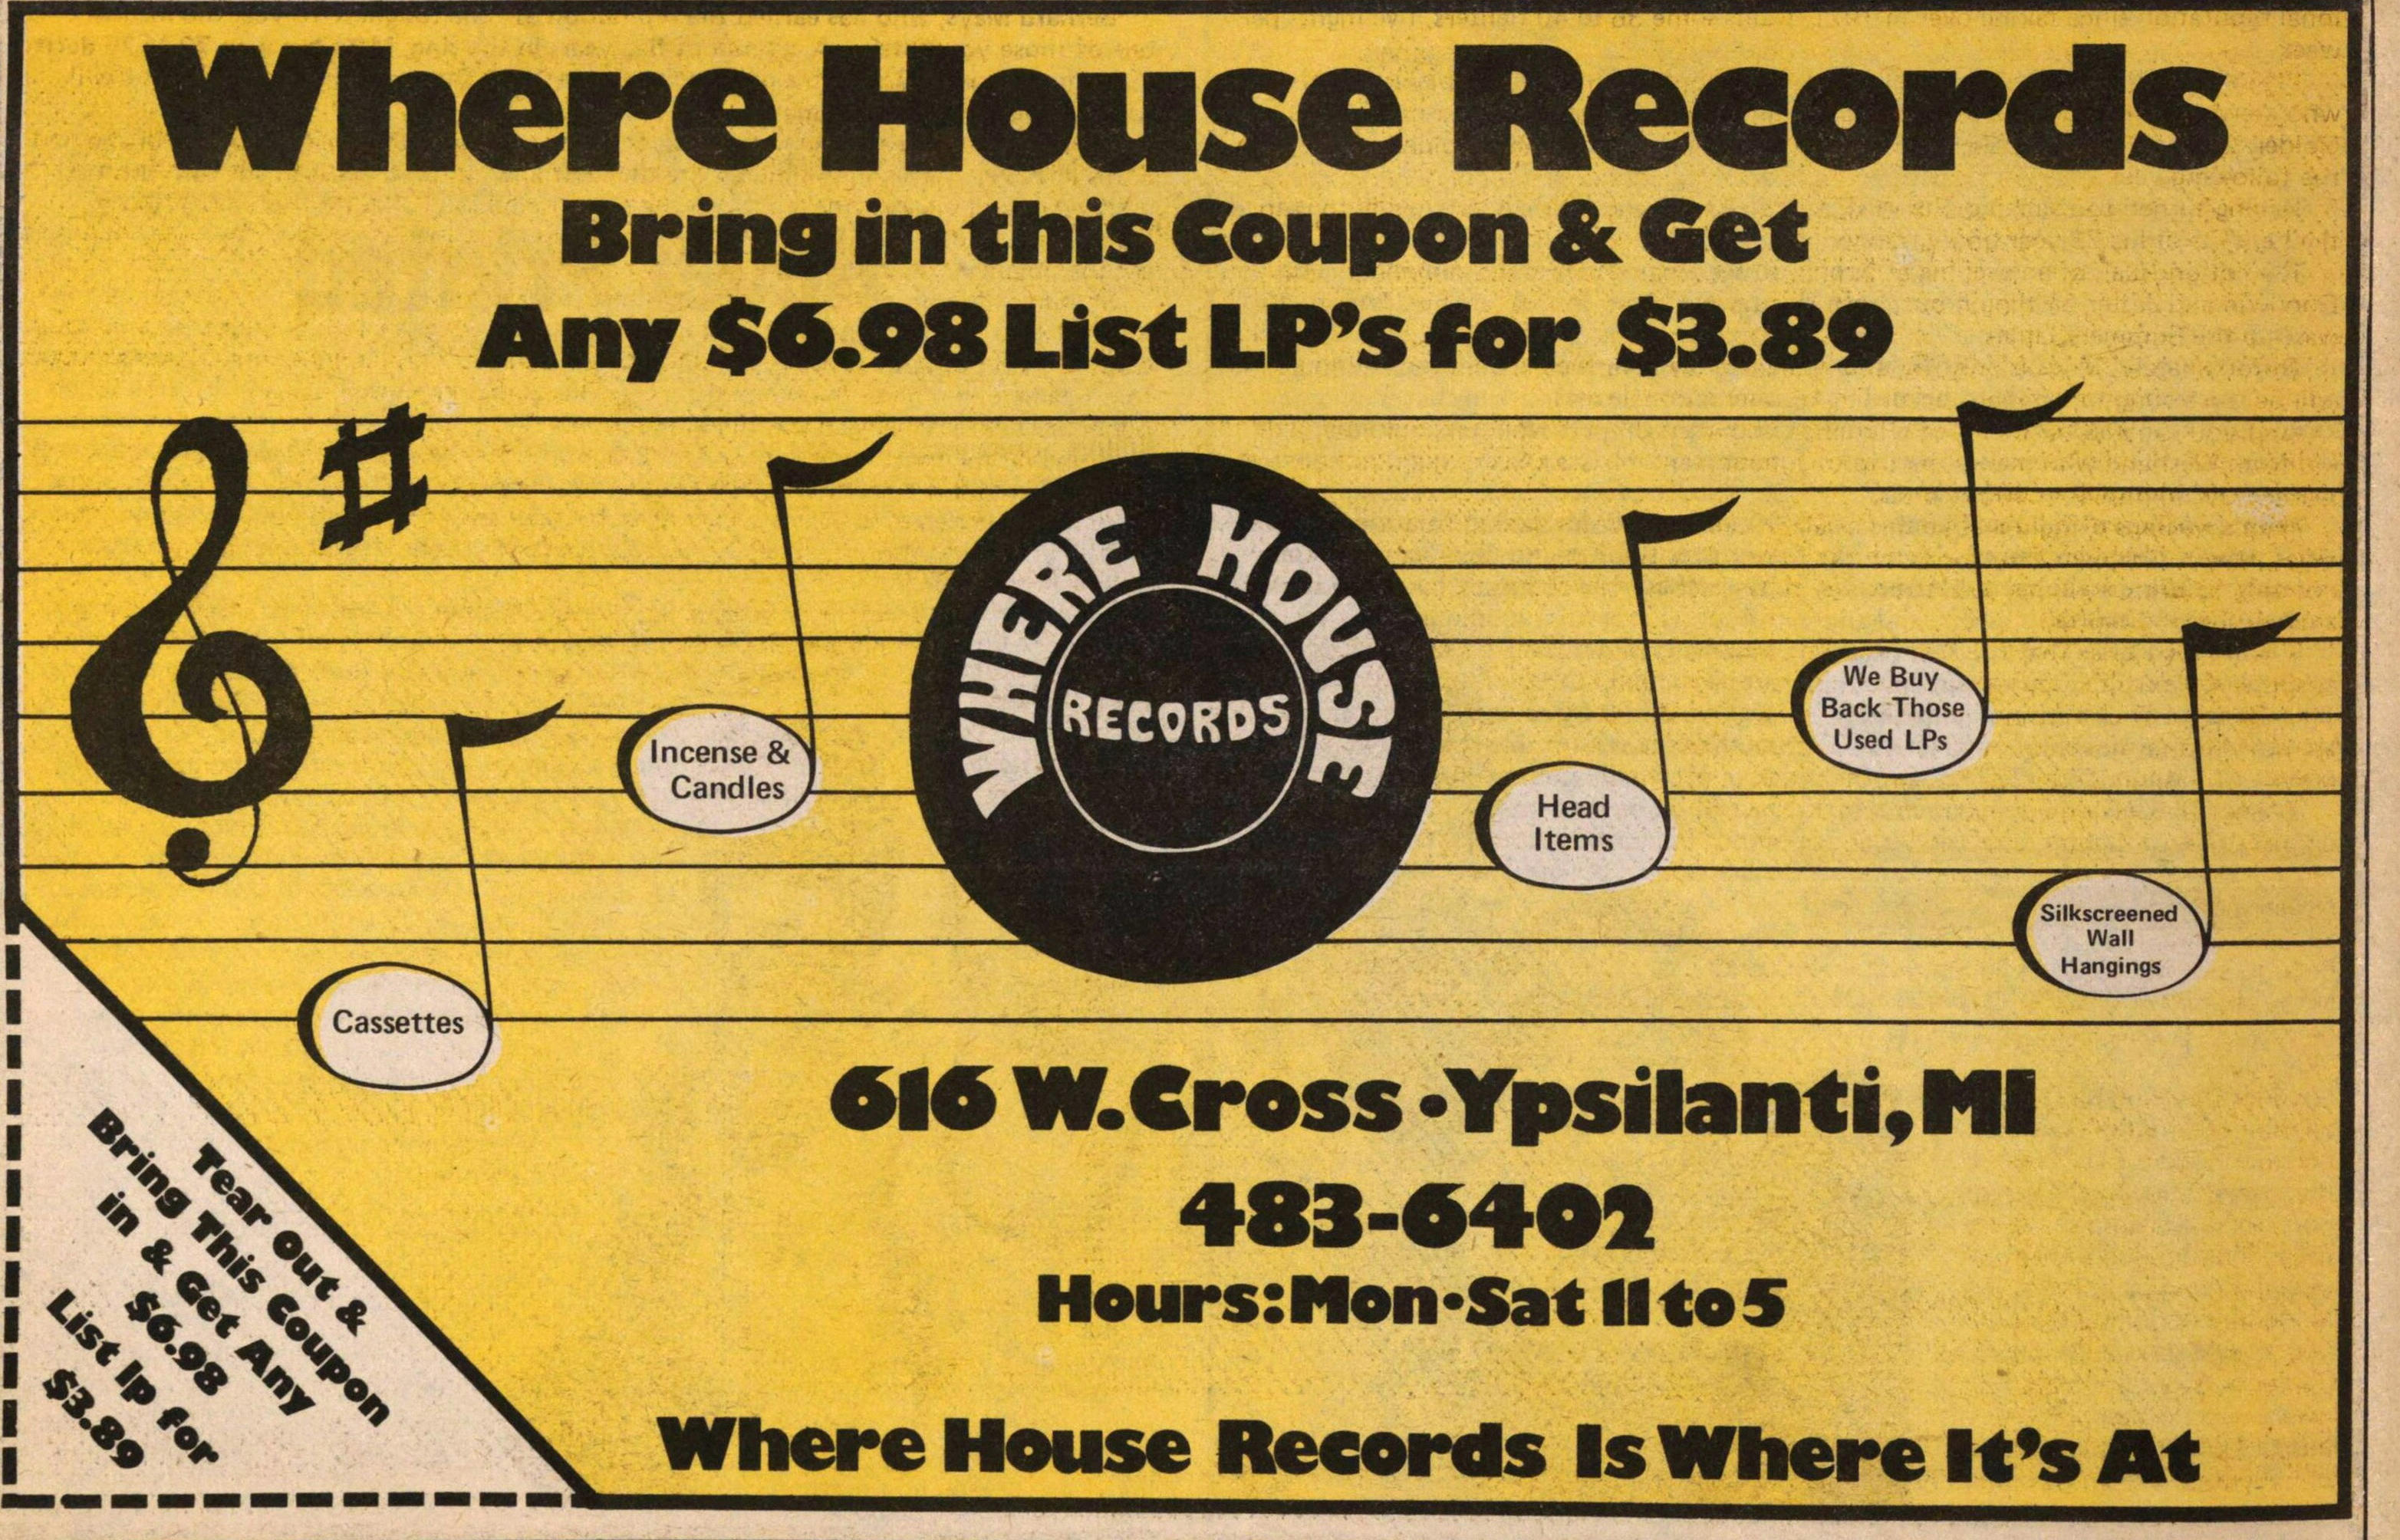 Where House Records image